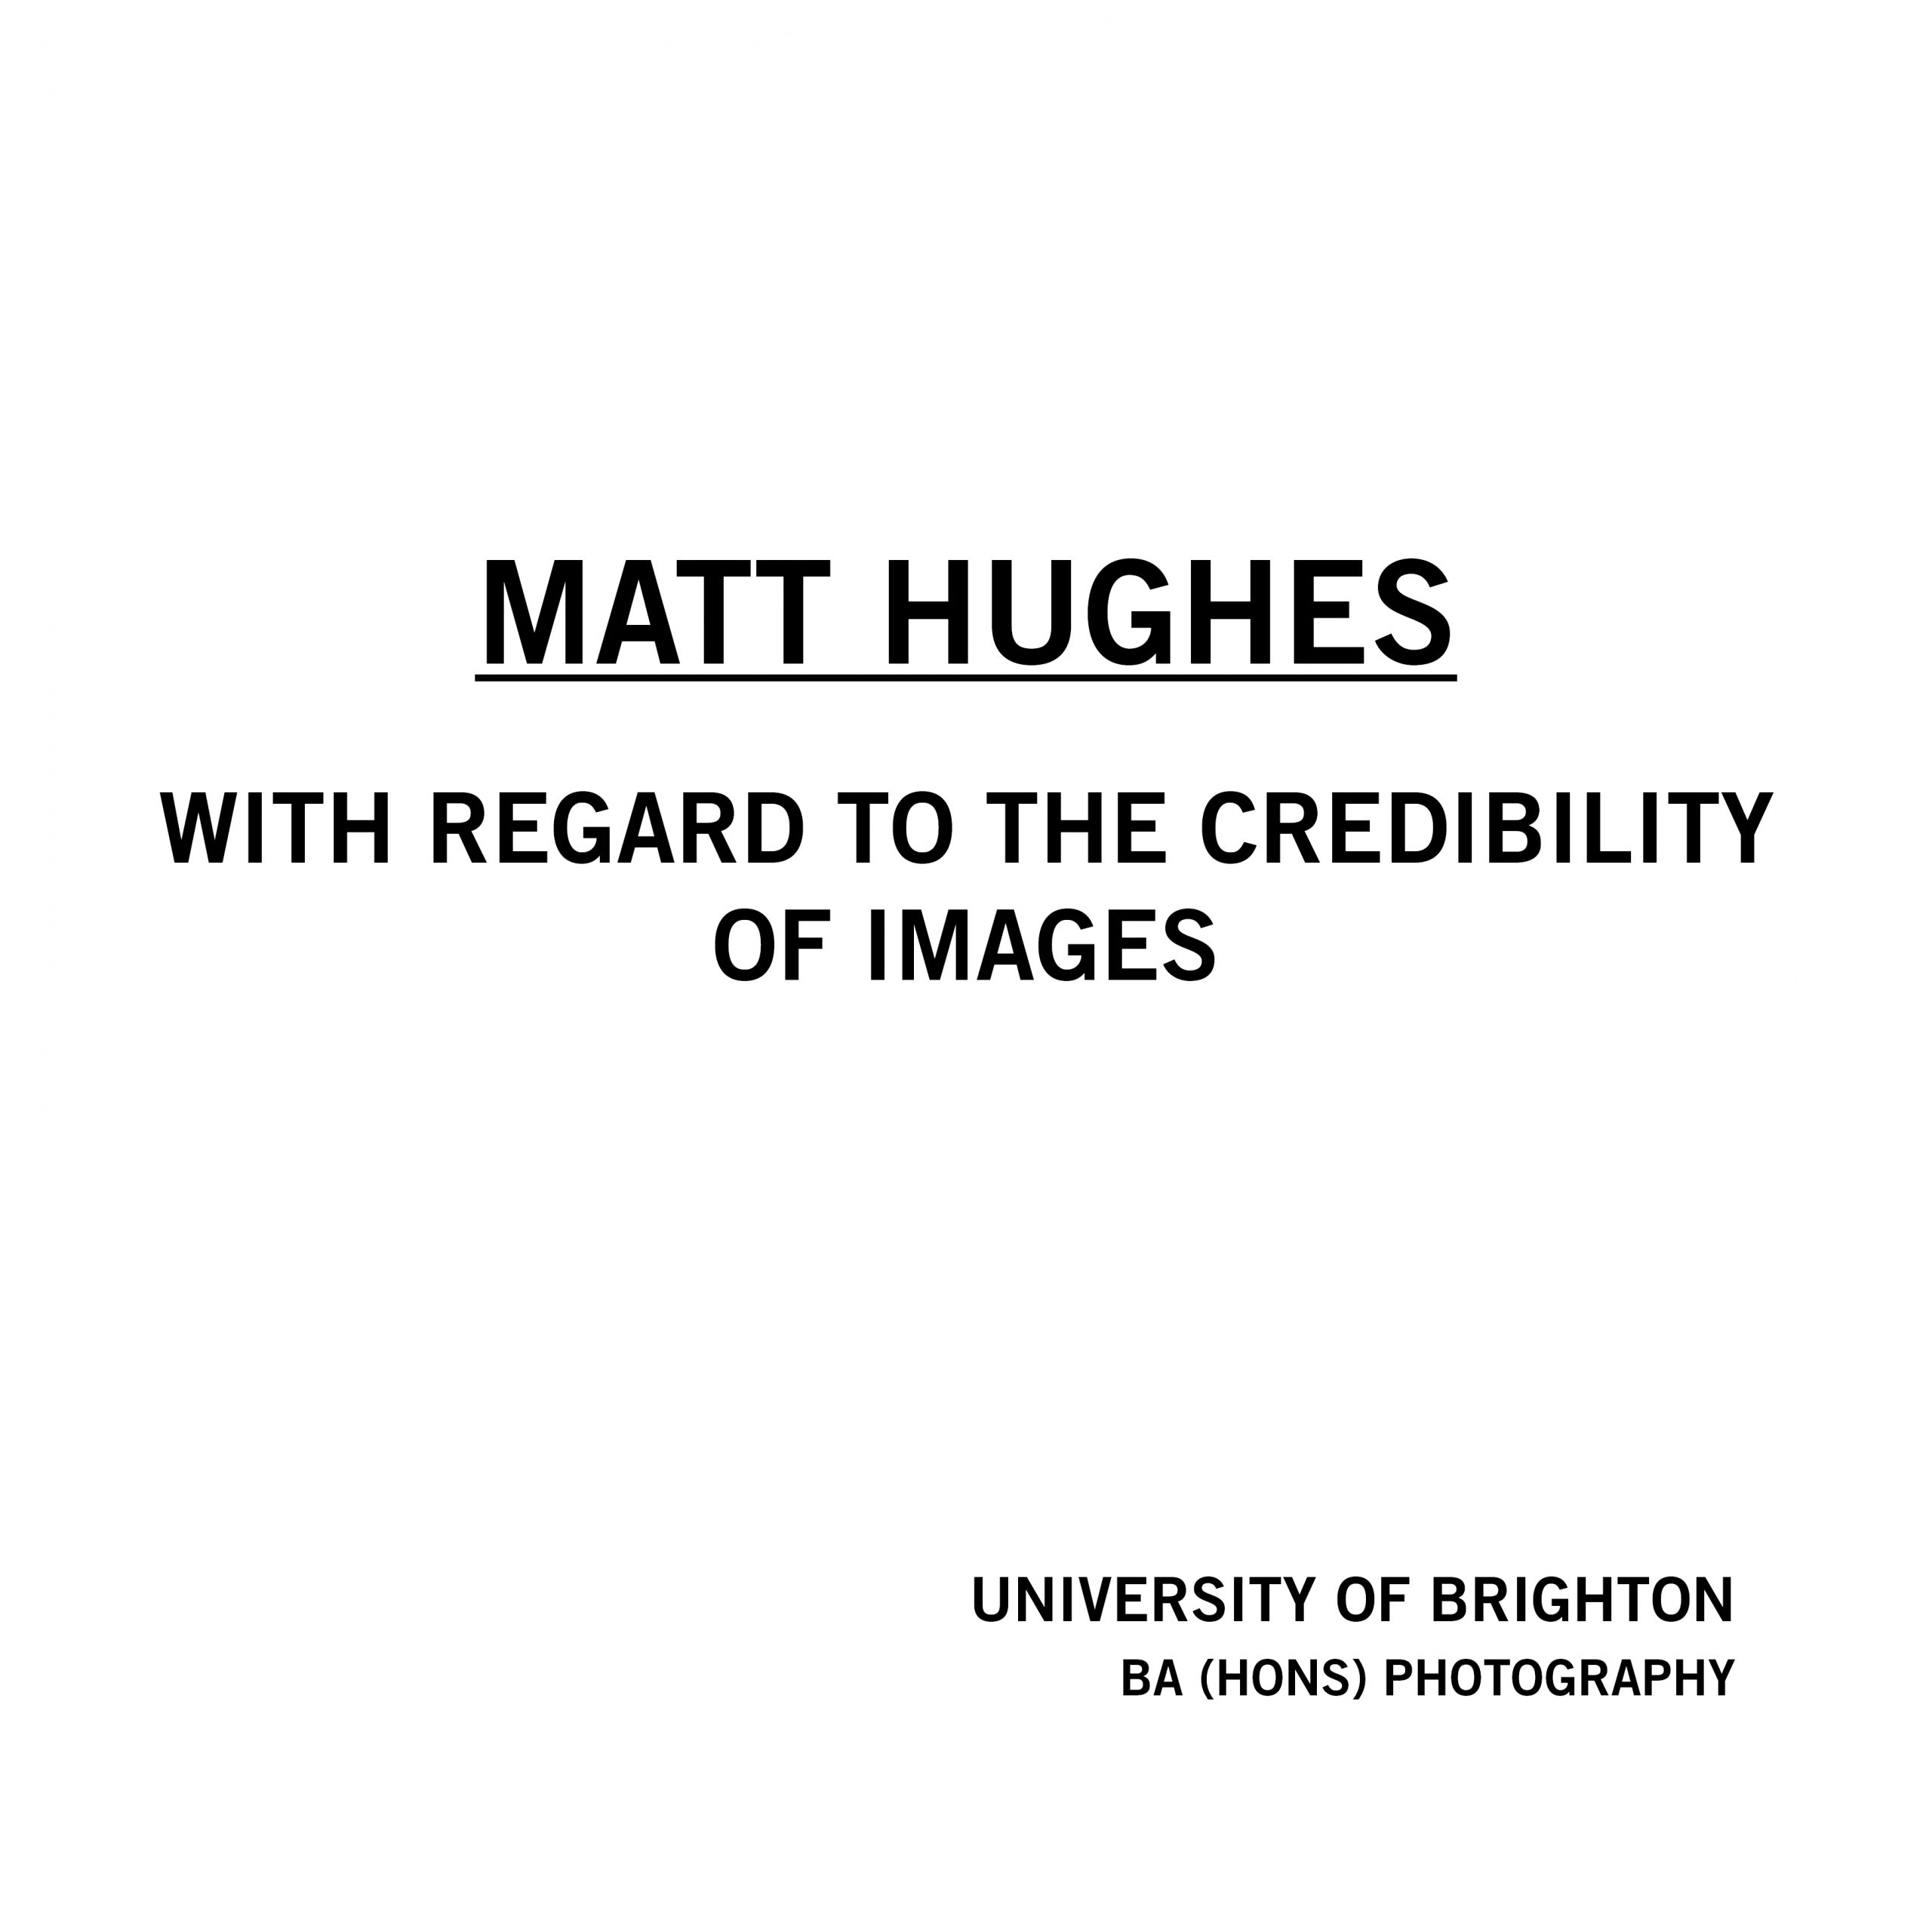 Matt Hughes - With Regard to the Credibility of Images